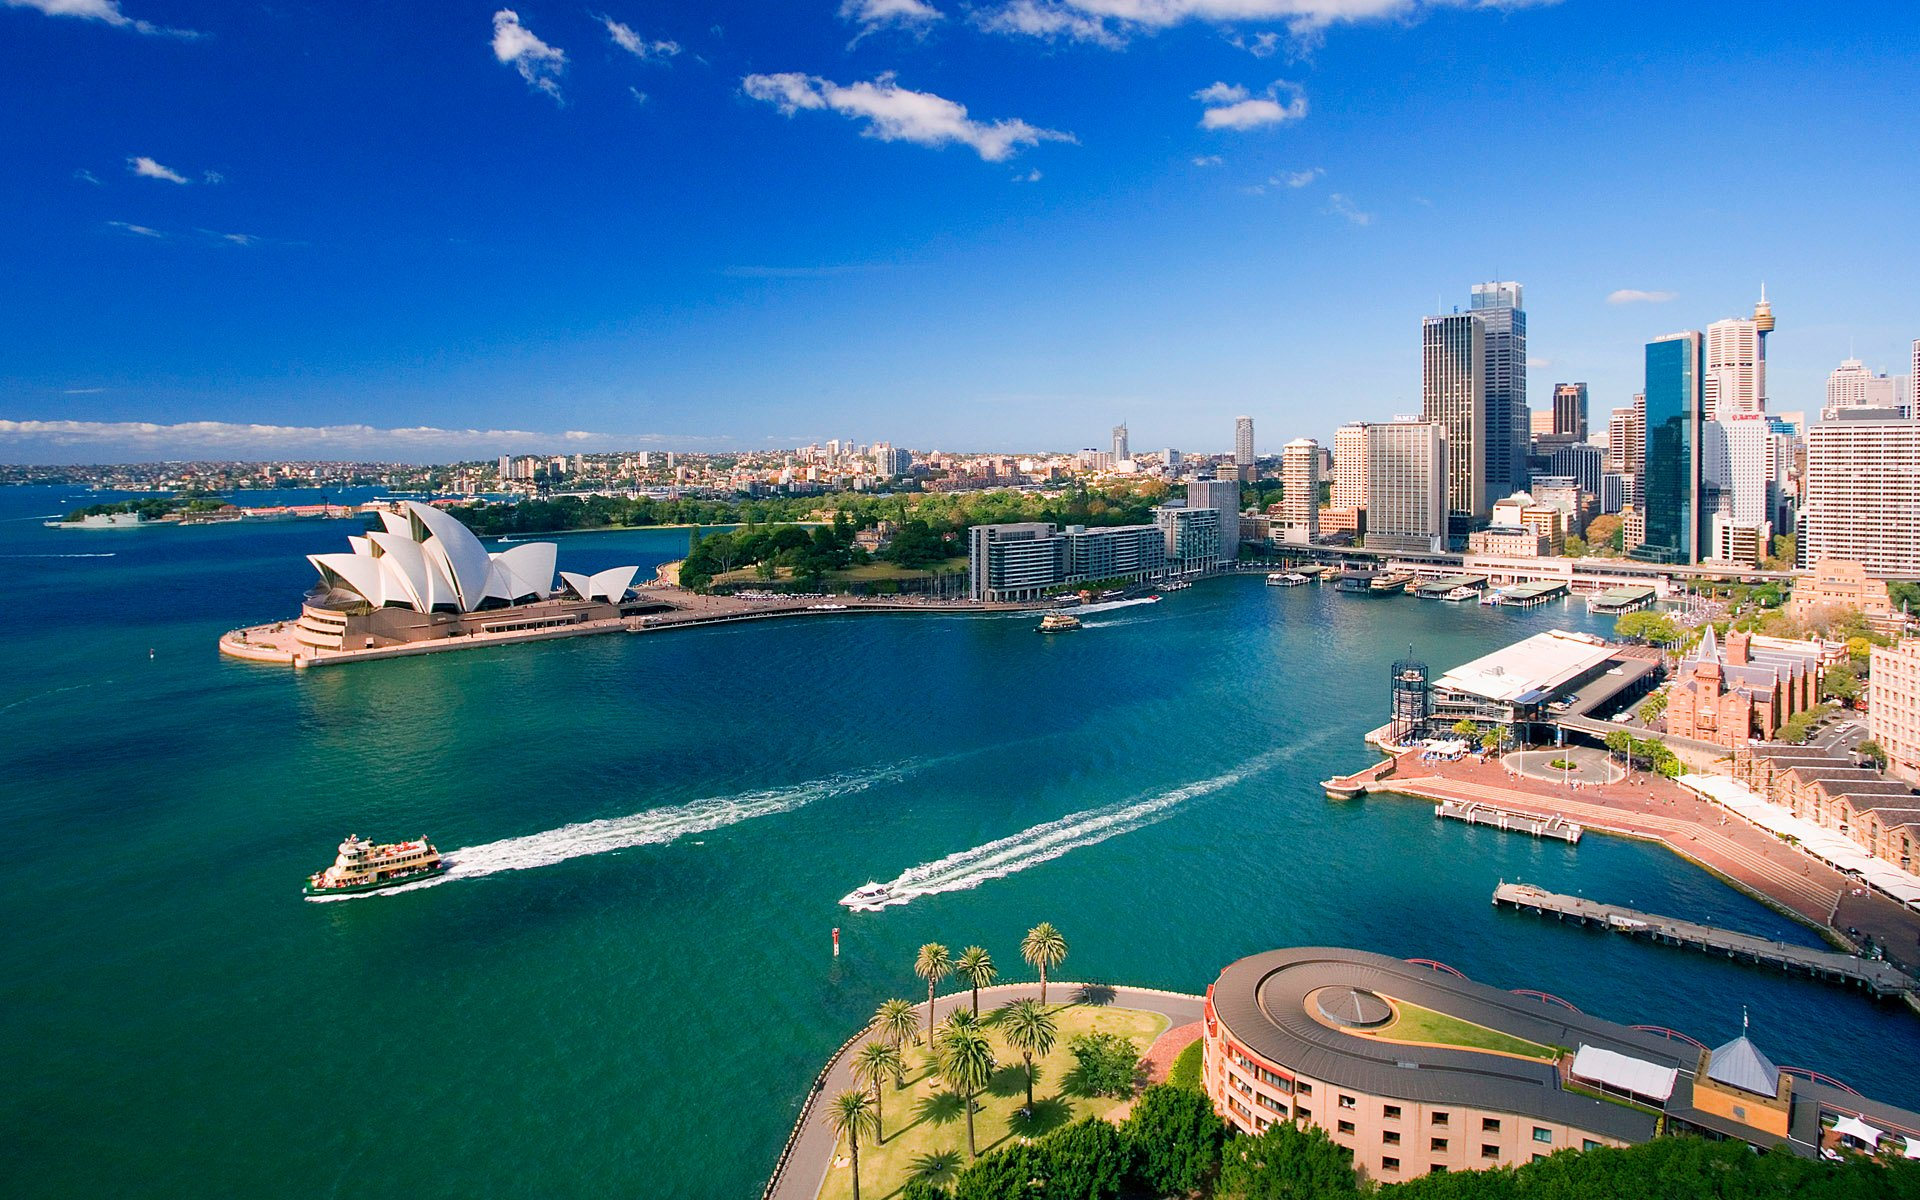 Downtown Sydney Australia Wallpapers HD Wallpapers 1920x1200